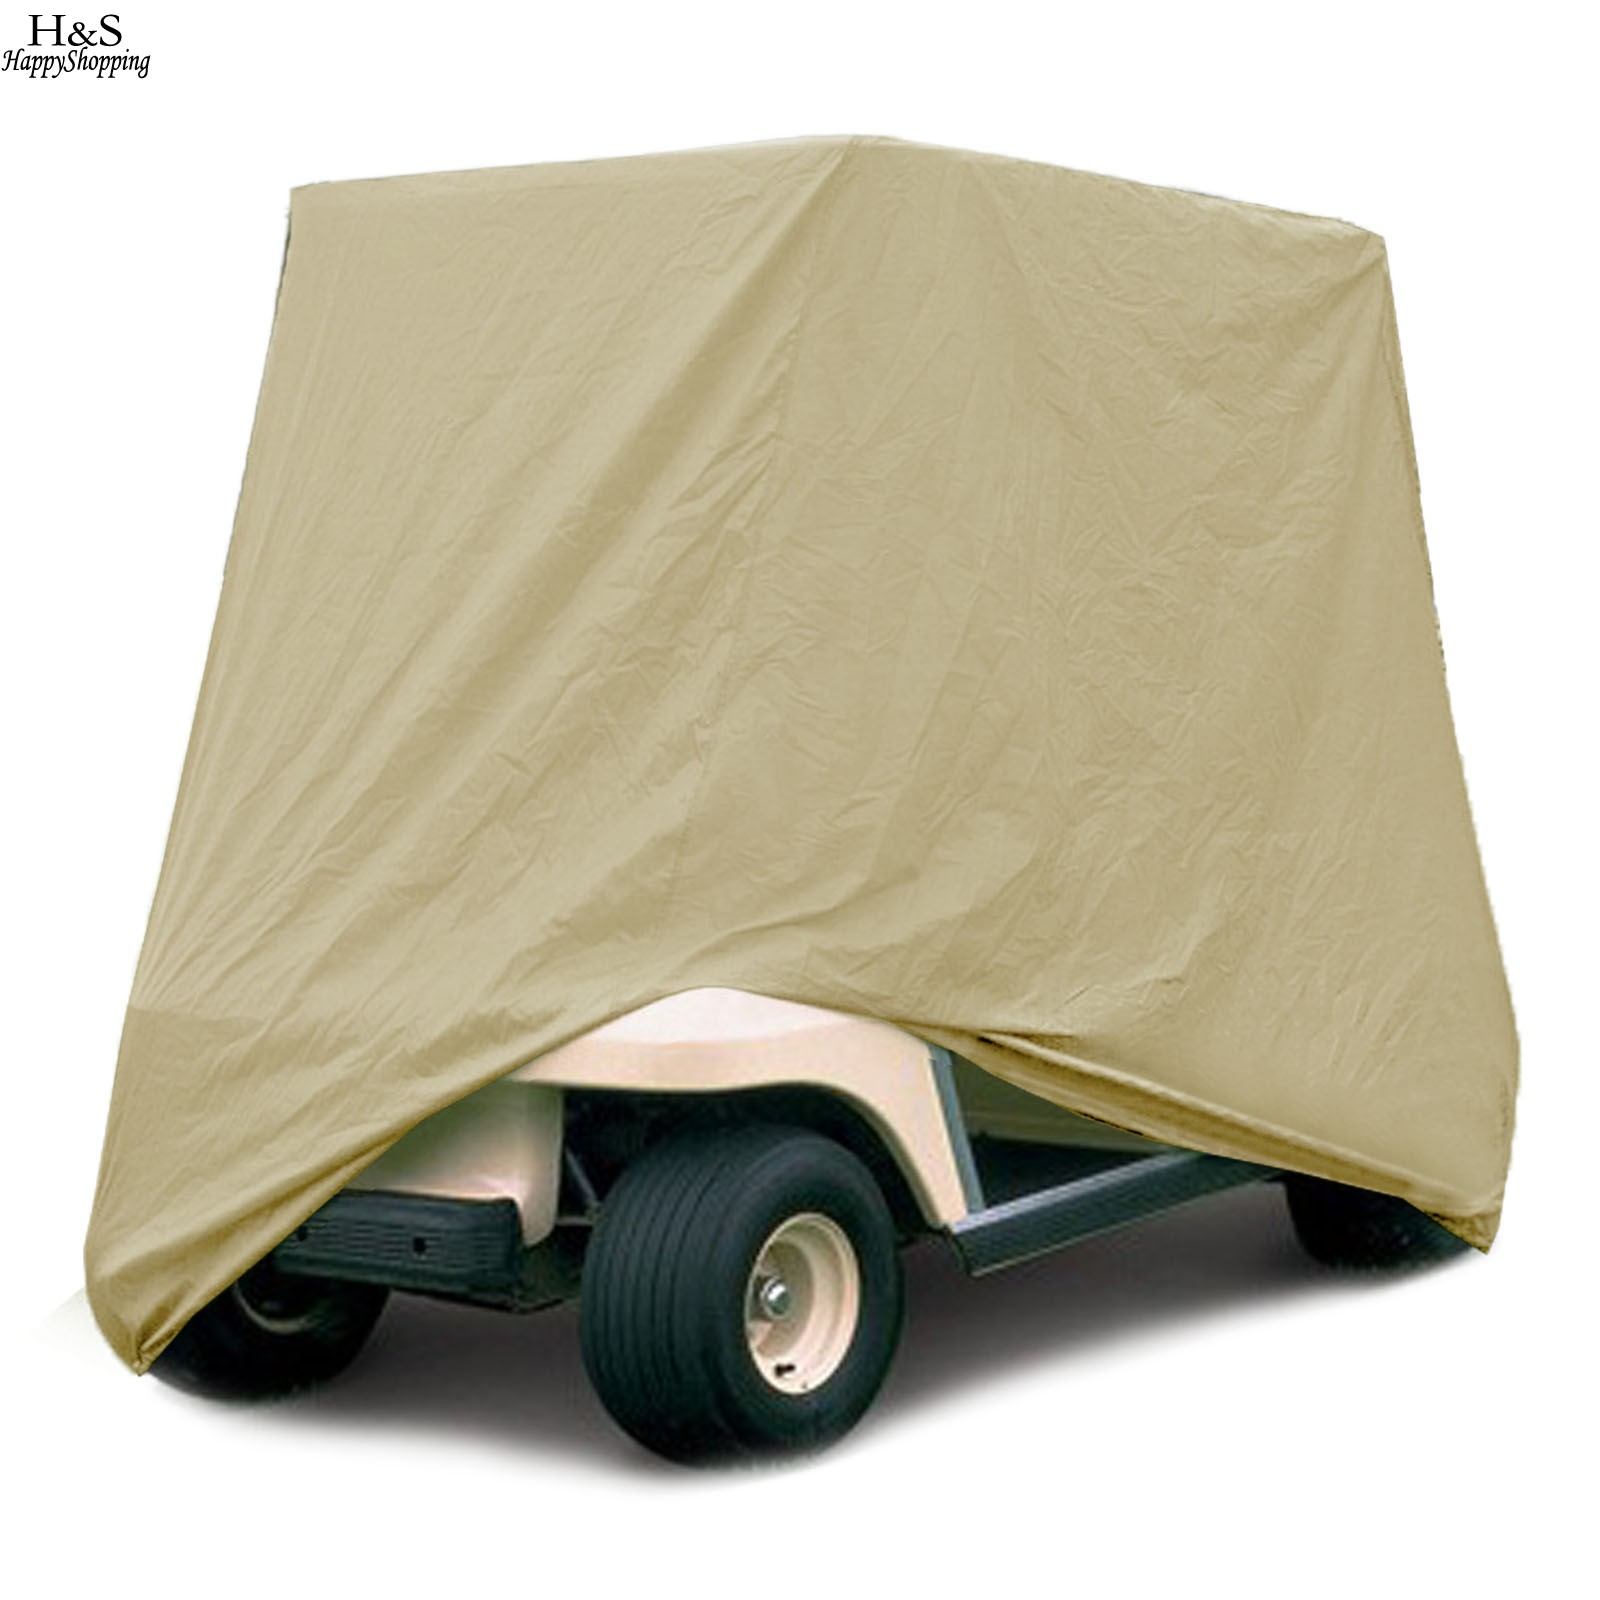 ANCHEER 4 Passenger Golf Cart Cover Protect For EZ Go Club Car For Yamaha Cart 112 inch